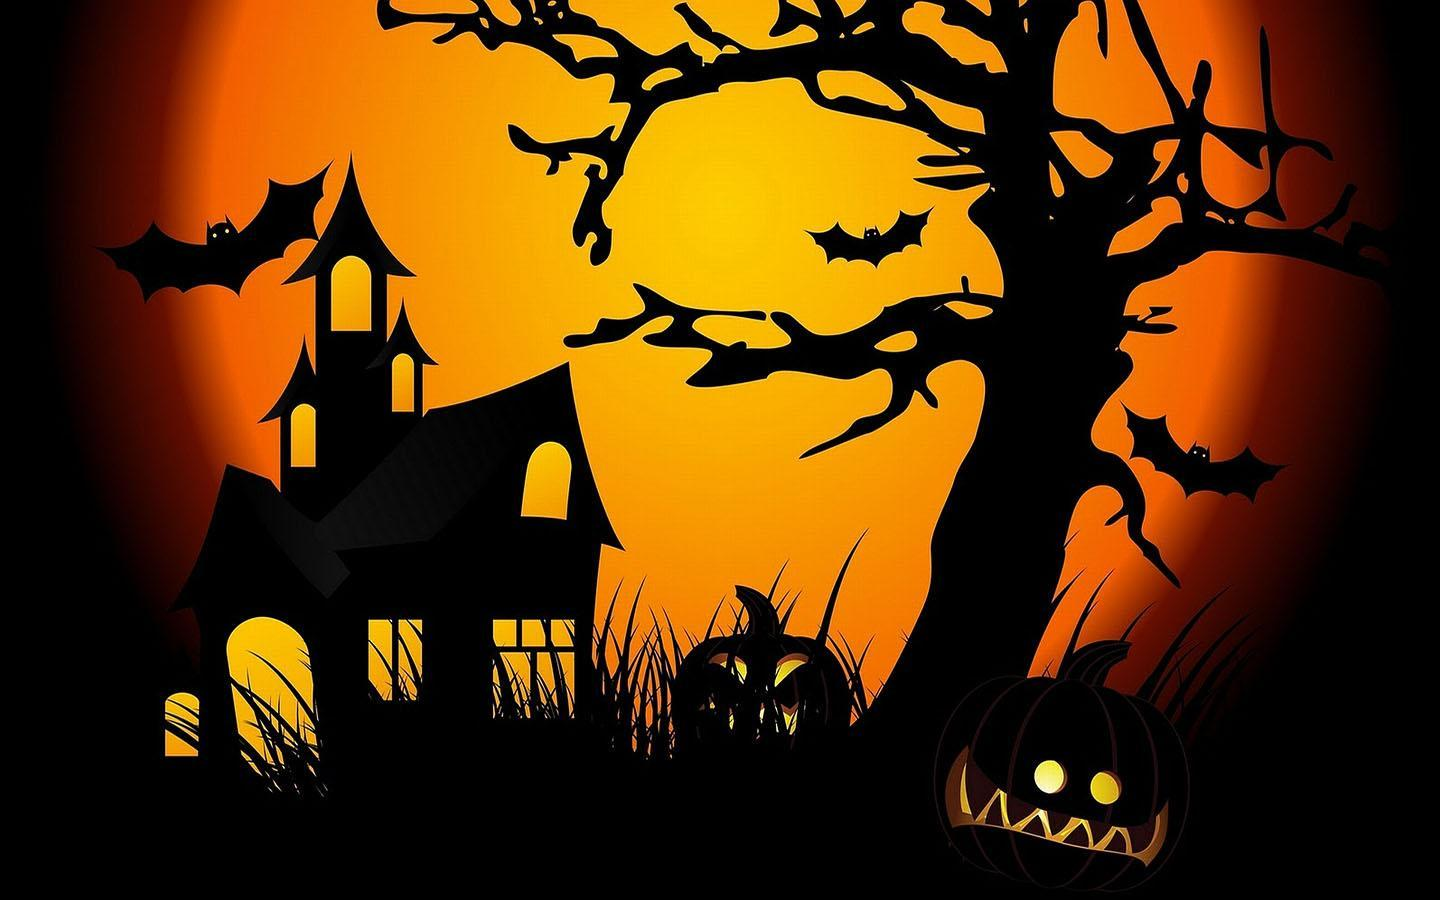 Halloween Wallpaper HD for Android   APK Download 1440x900